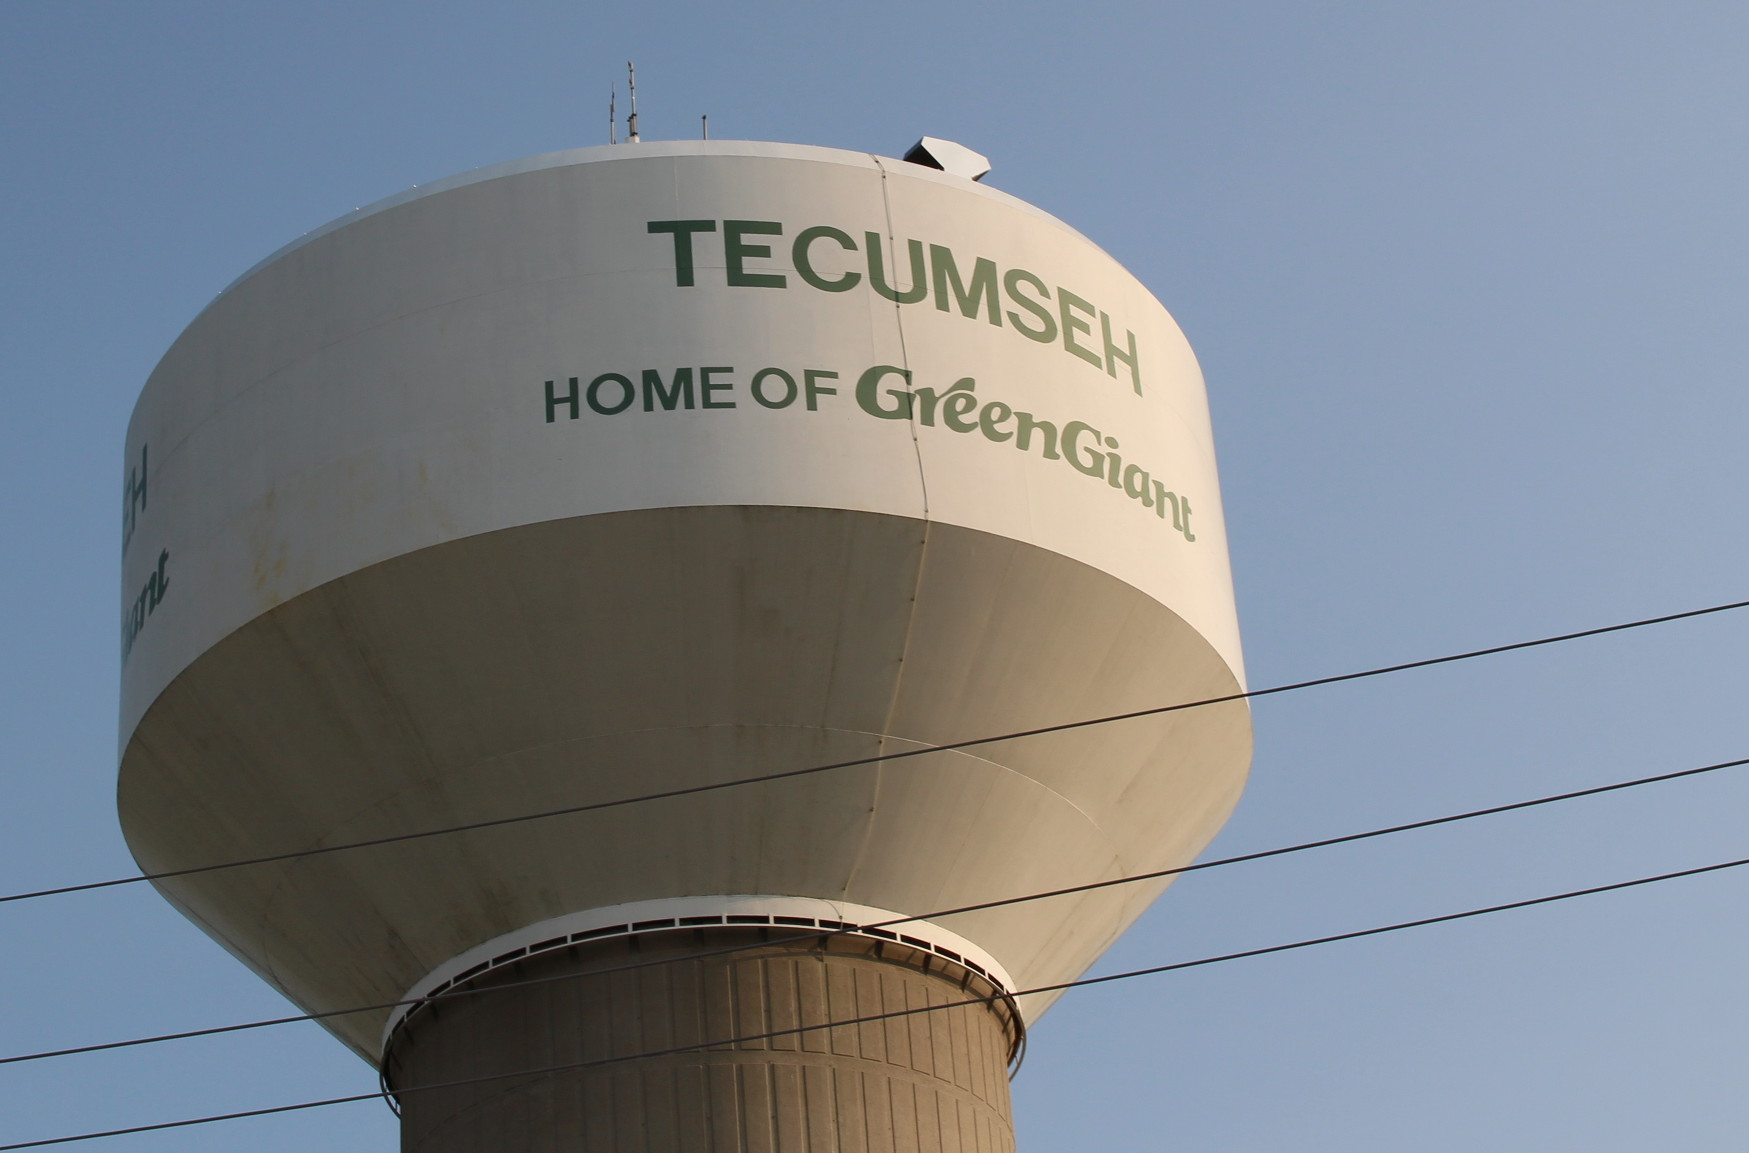 The Tecumseh water tower. (Photo by Adelle Loiselle.)